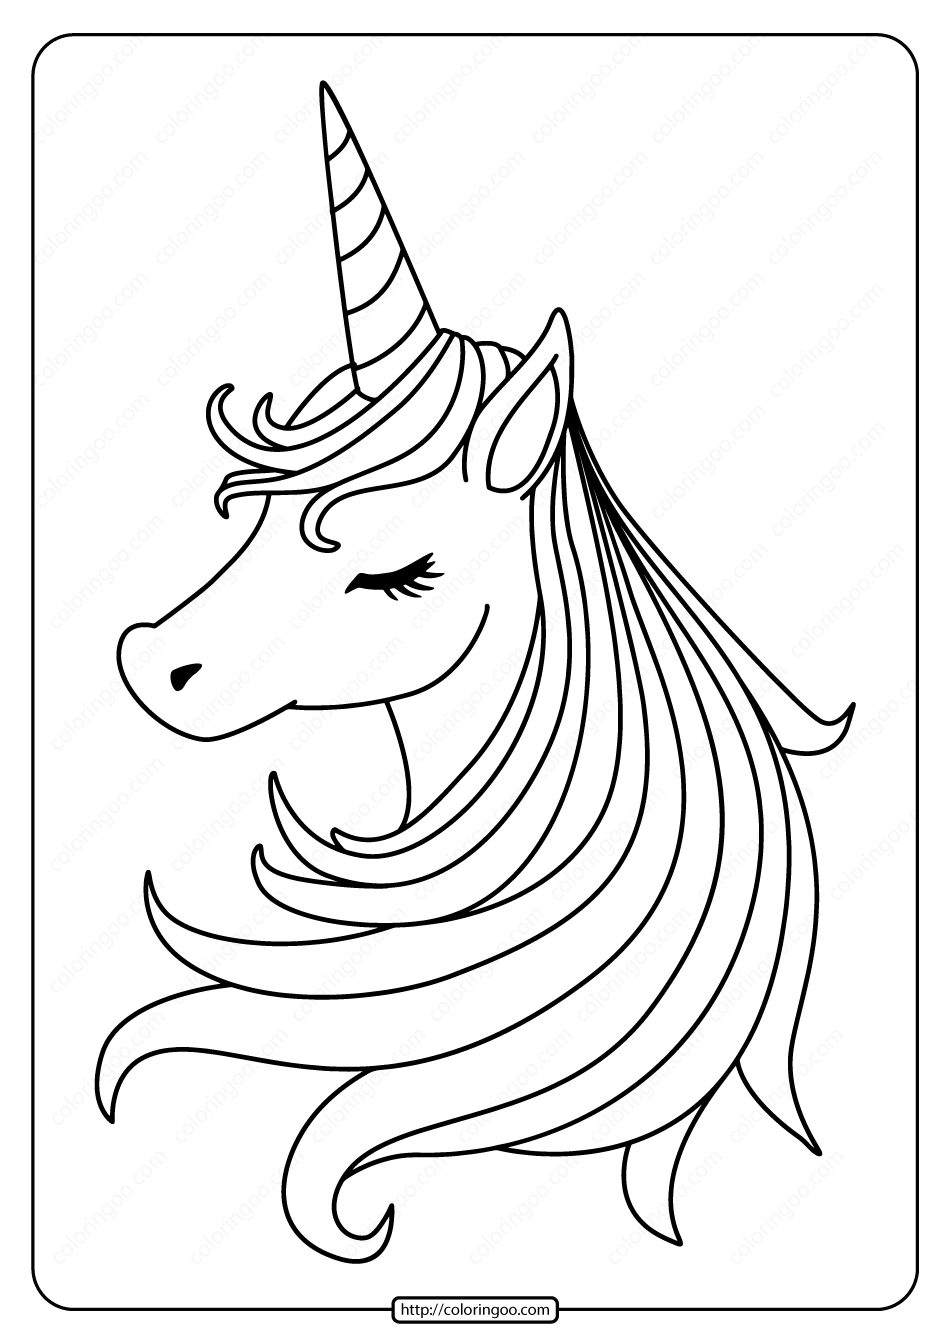 coloring book for kids pdf free printable sleeping unicorn pdf coloring page pdf book coloring for kids